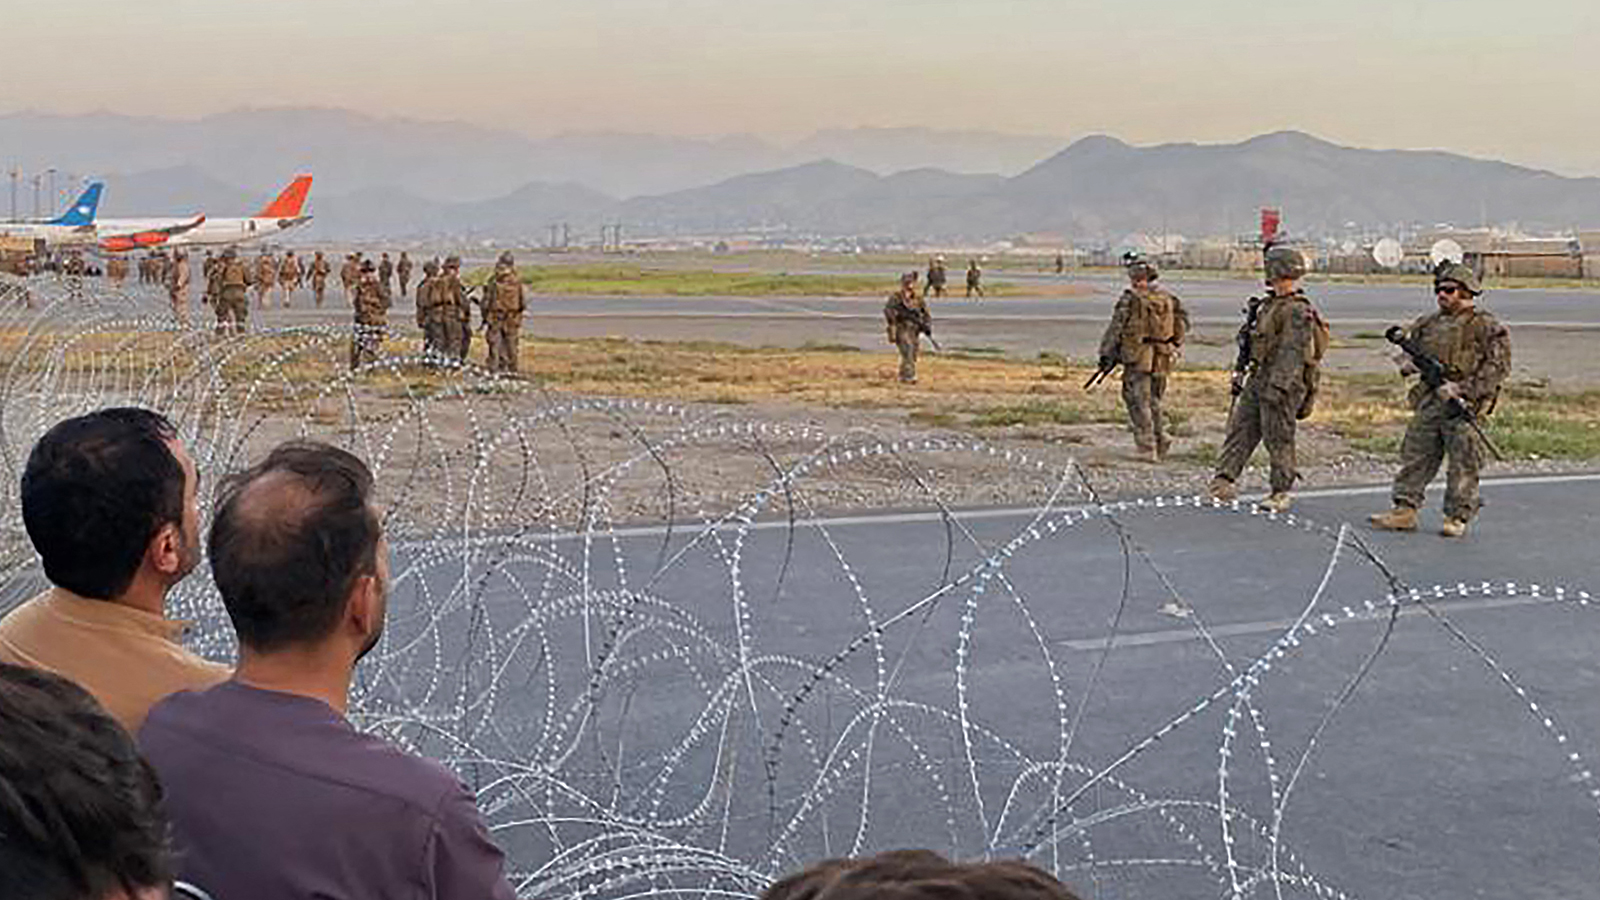 U.S. military guarding airport; Biden Afghanistan pullout